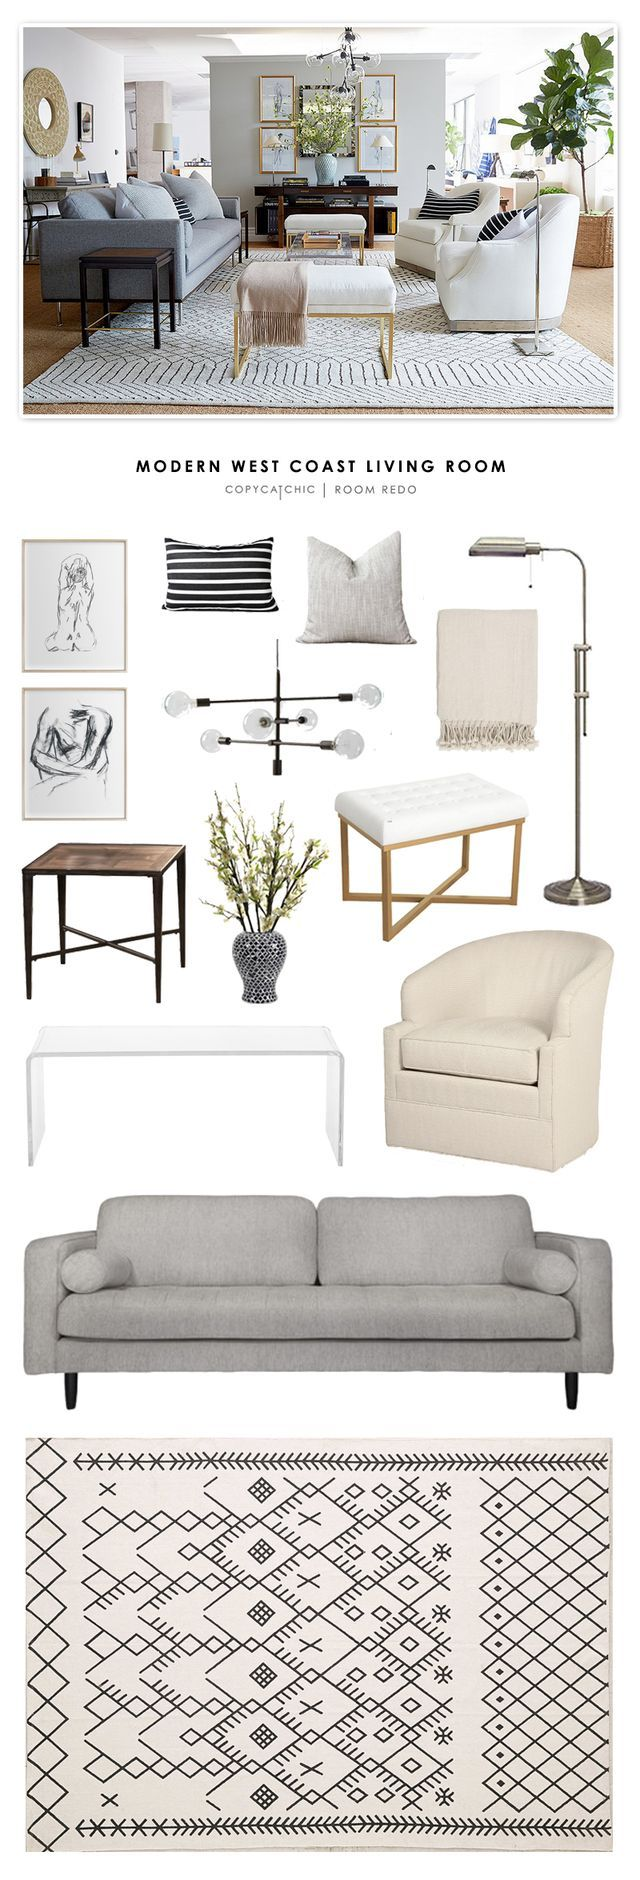 Inspiration hygge pinterest inredning vardagsrum for Living room quiz pinterest